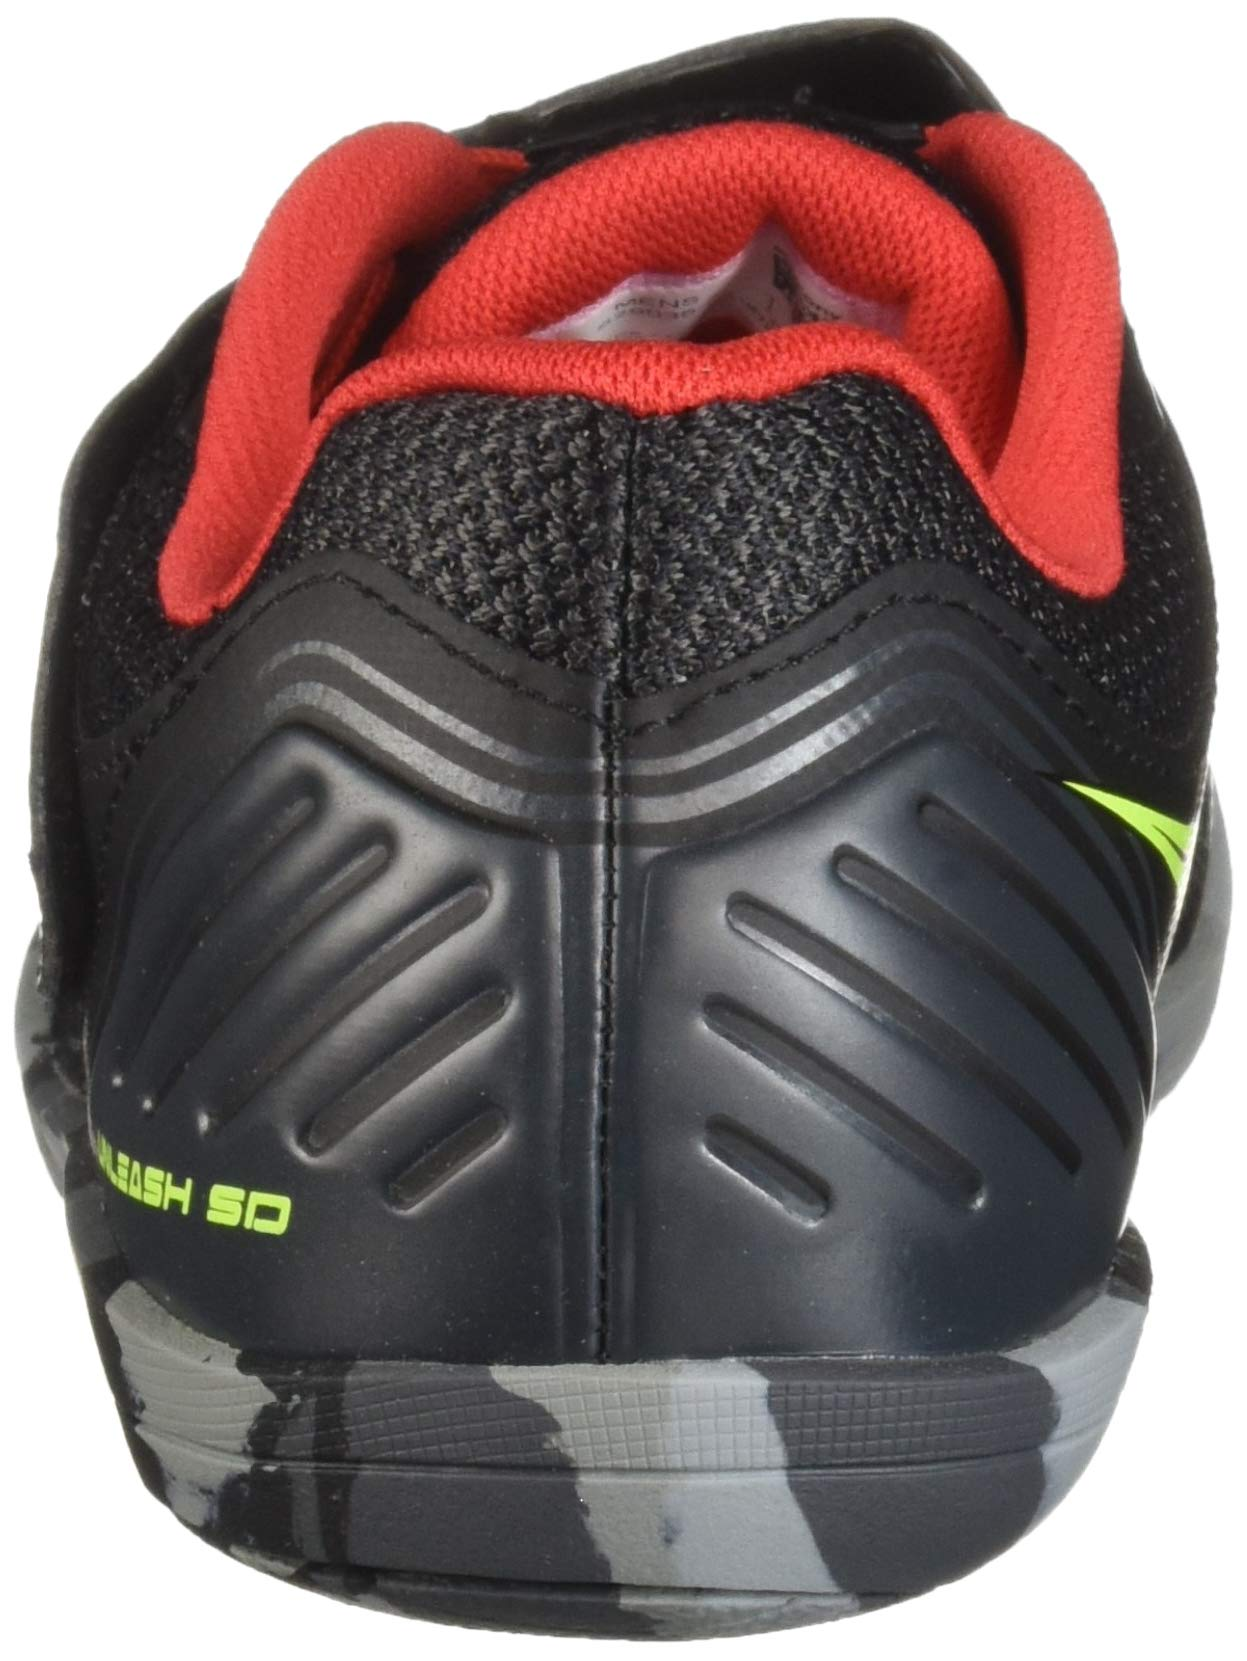 Saucony Men's Unleash SD2 Track and Field Shoe, Black/red, 6 by Saucony (Image #2)